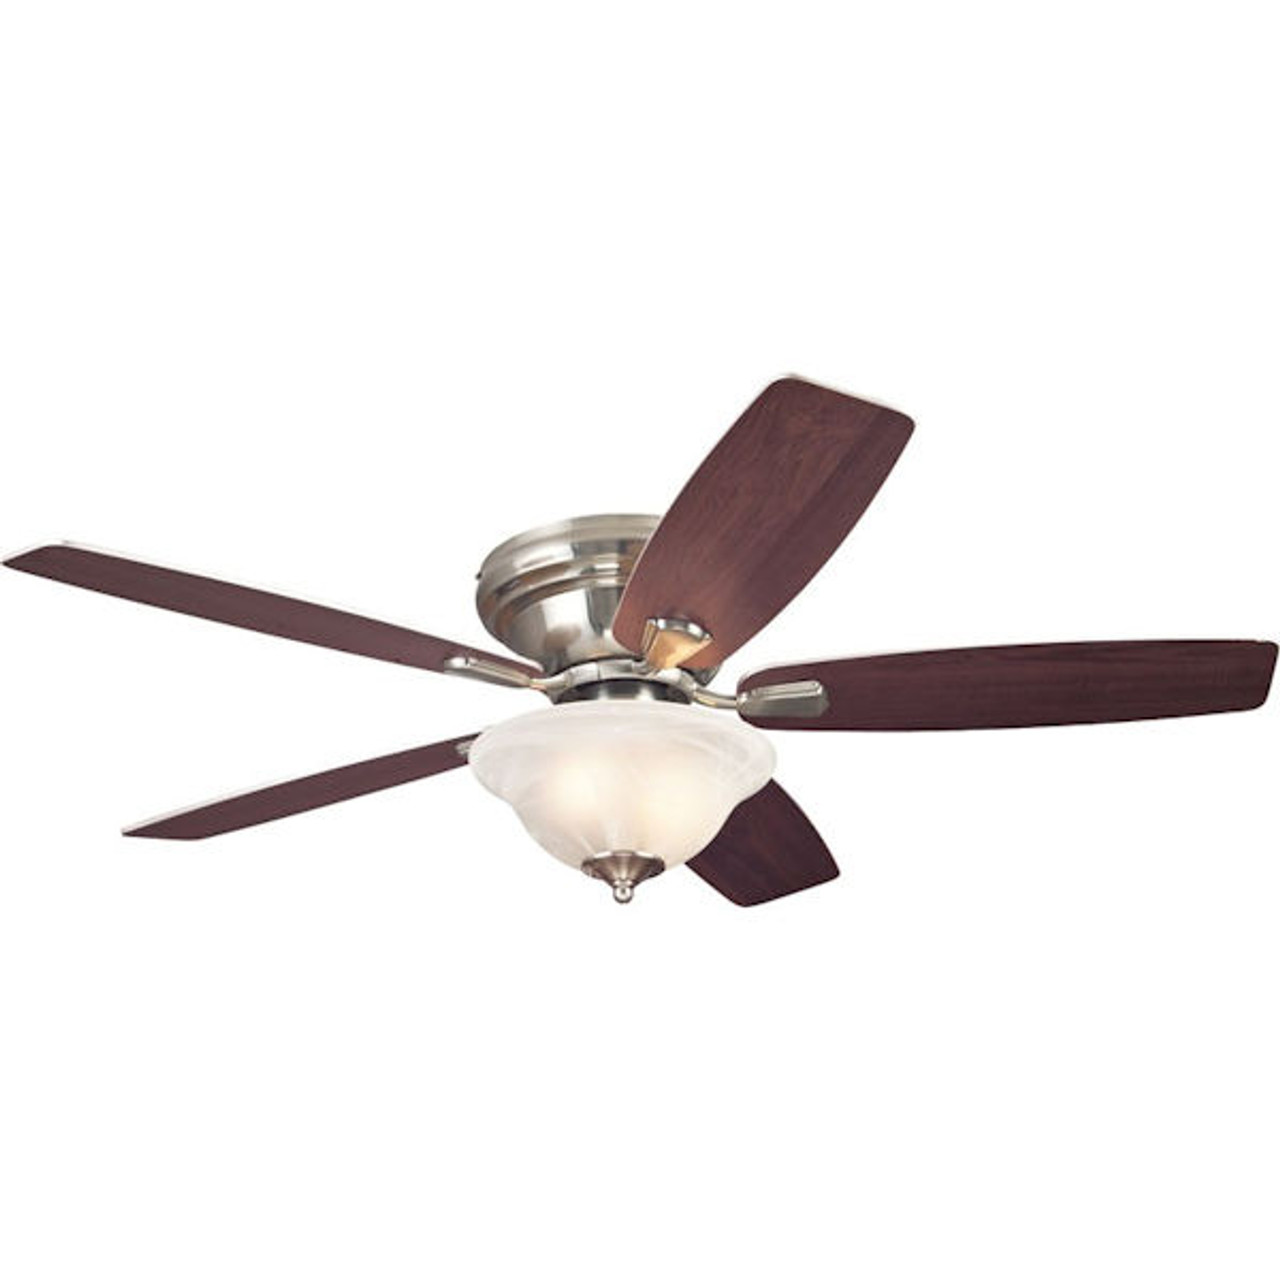 Westinghouse Sumter 52 in. Ceiling Fan in Brushed Nickel - New